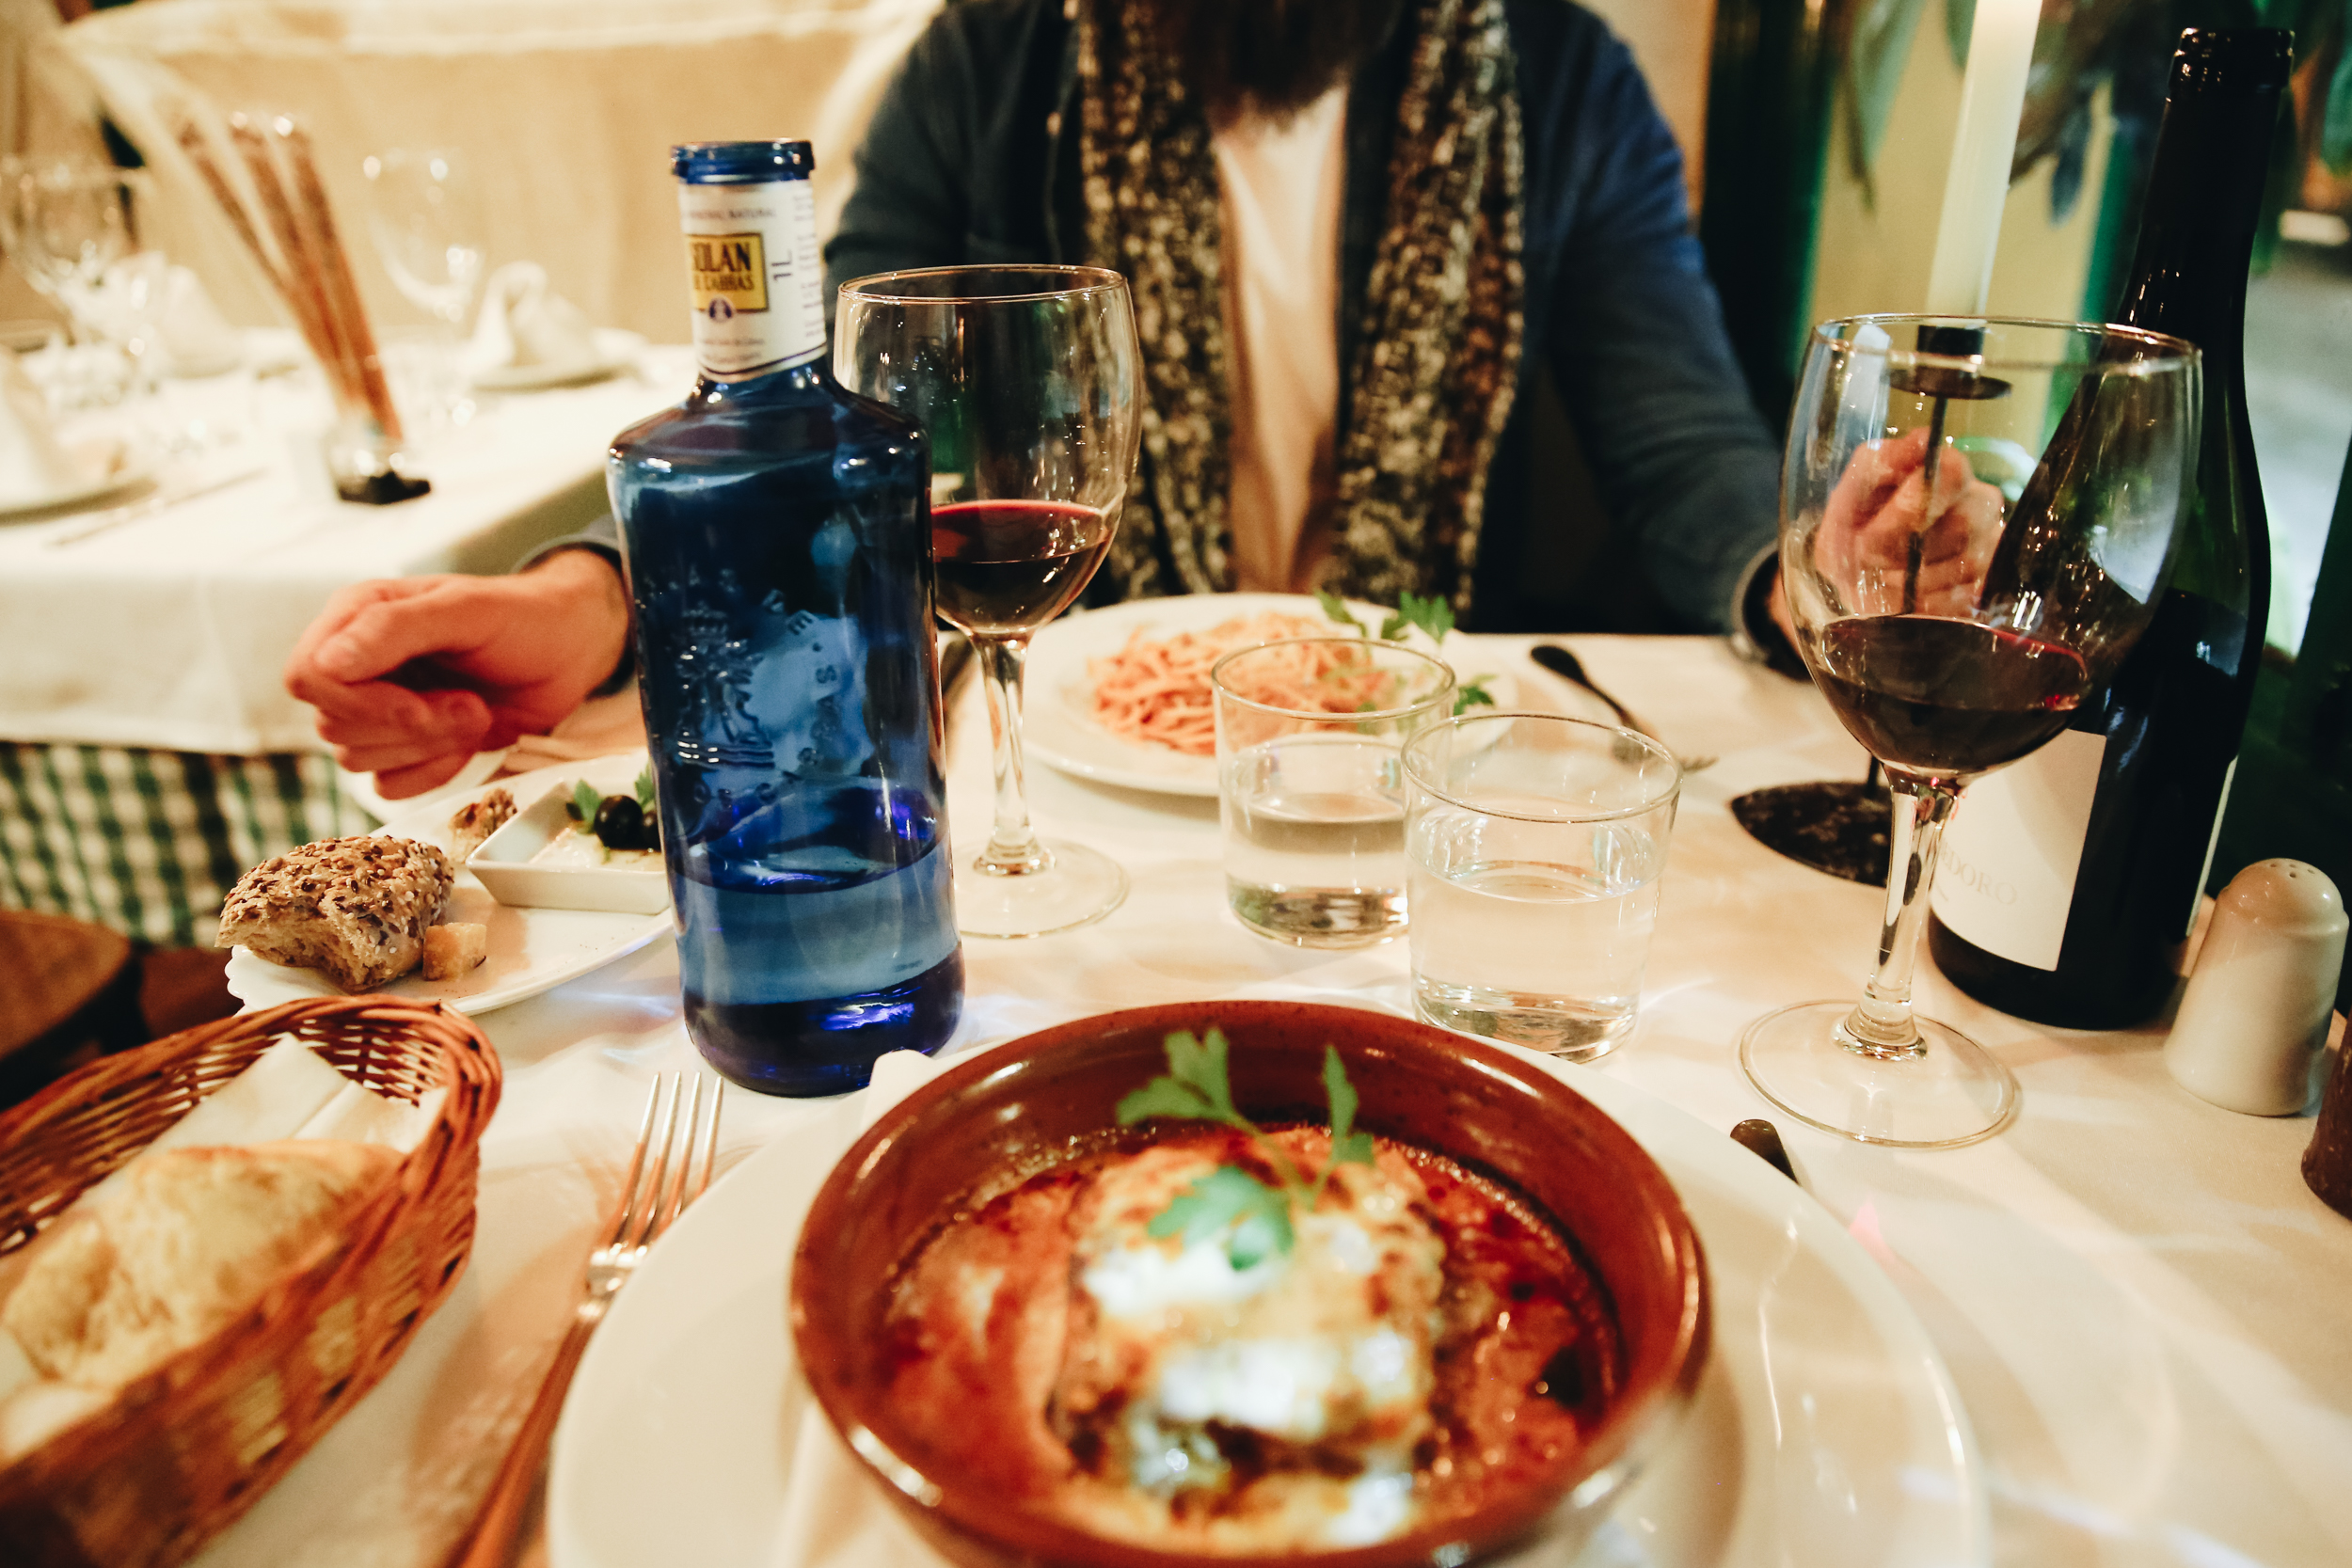 Dinner at Come Prima – said to be one of Madrid's best Italian restaurants